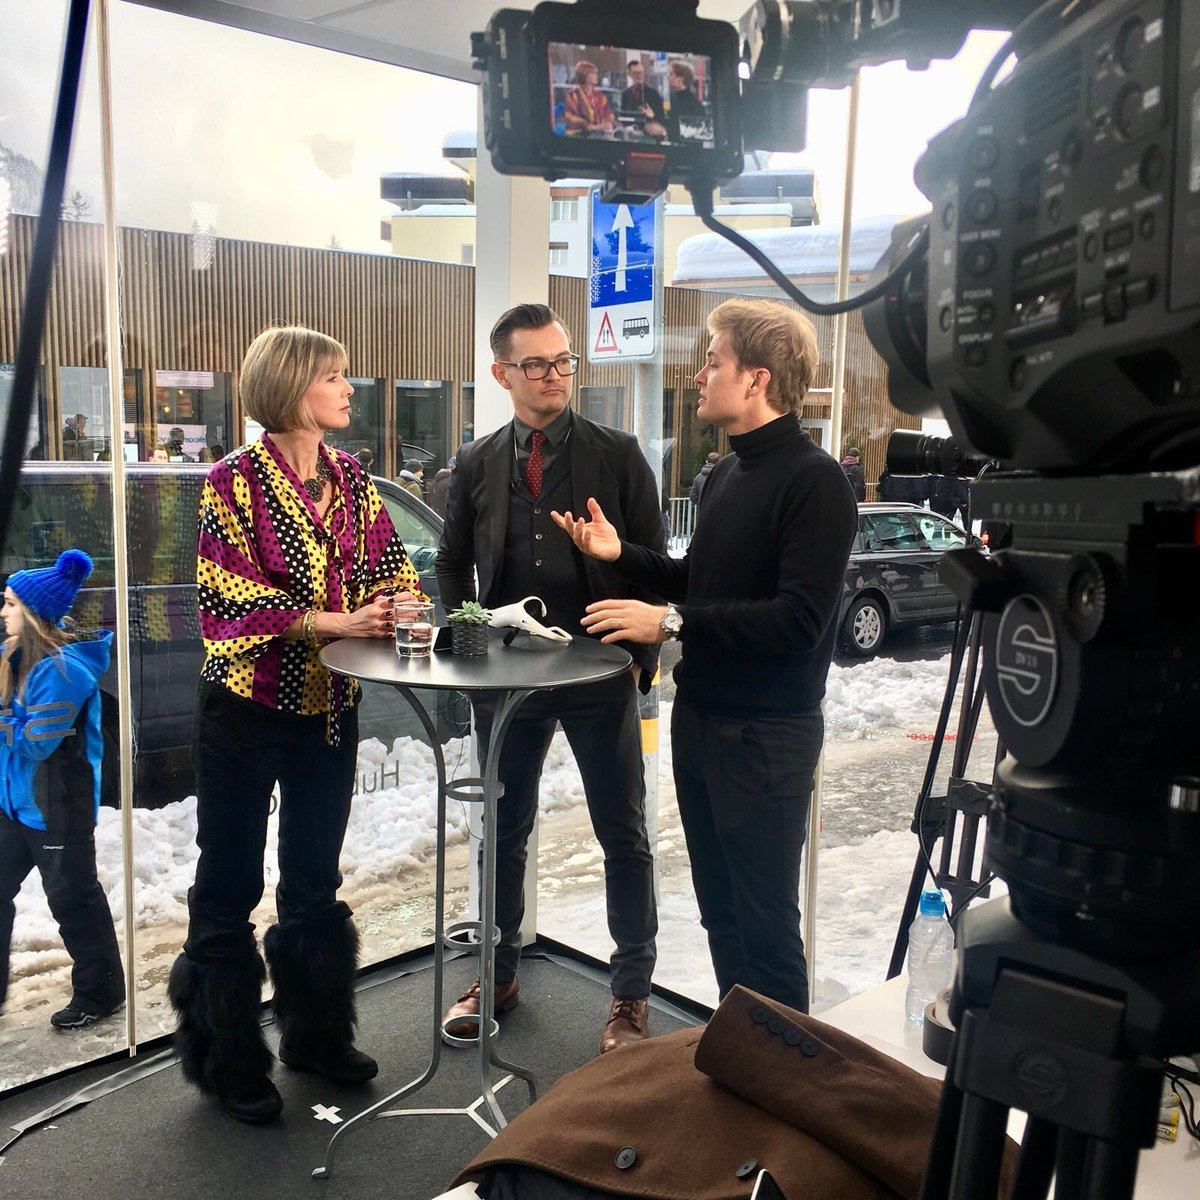 Live from @HubCulture @wef, @edielush chats to @NicoRosbergFR and @jamesphewitt about 'always-on' mode, fear and mental performance.  @emotiv @hintsaperform #wef2018 #hintsa #emotiv #Davos #Switzerland #business #empower #impact #purpose #societalimpact #neurotech #VR #blockchain<br>http://pic.twitter.com/DFCmt1NOz7